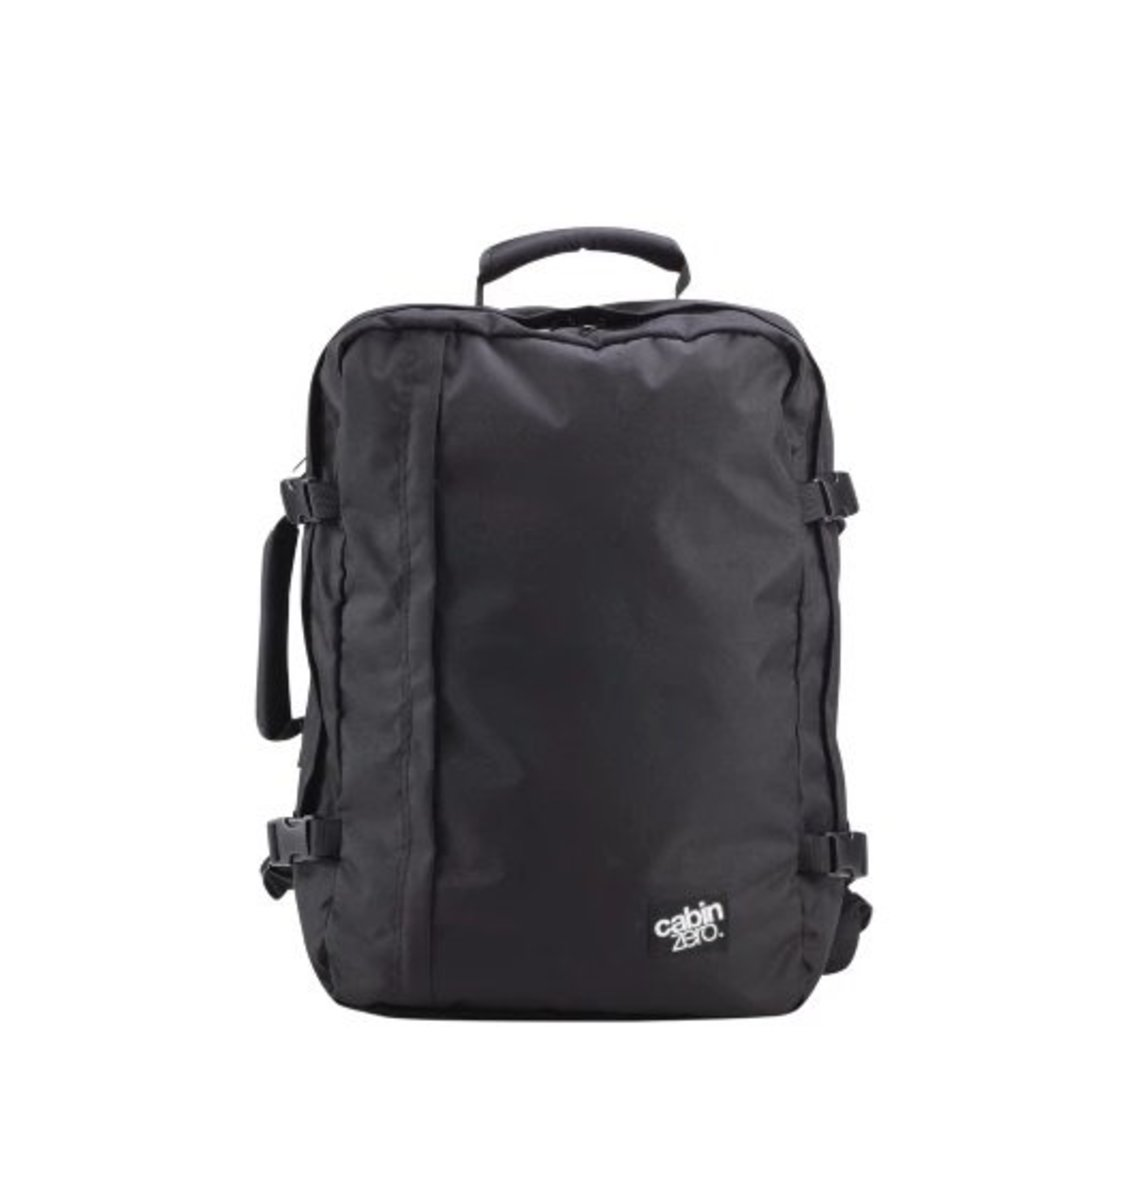 Hand Carry 44L Large Capacity Travel Backpack (Black)